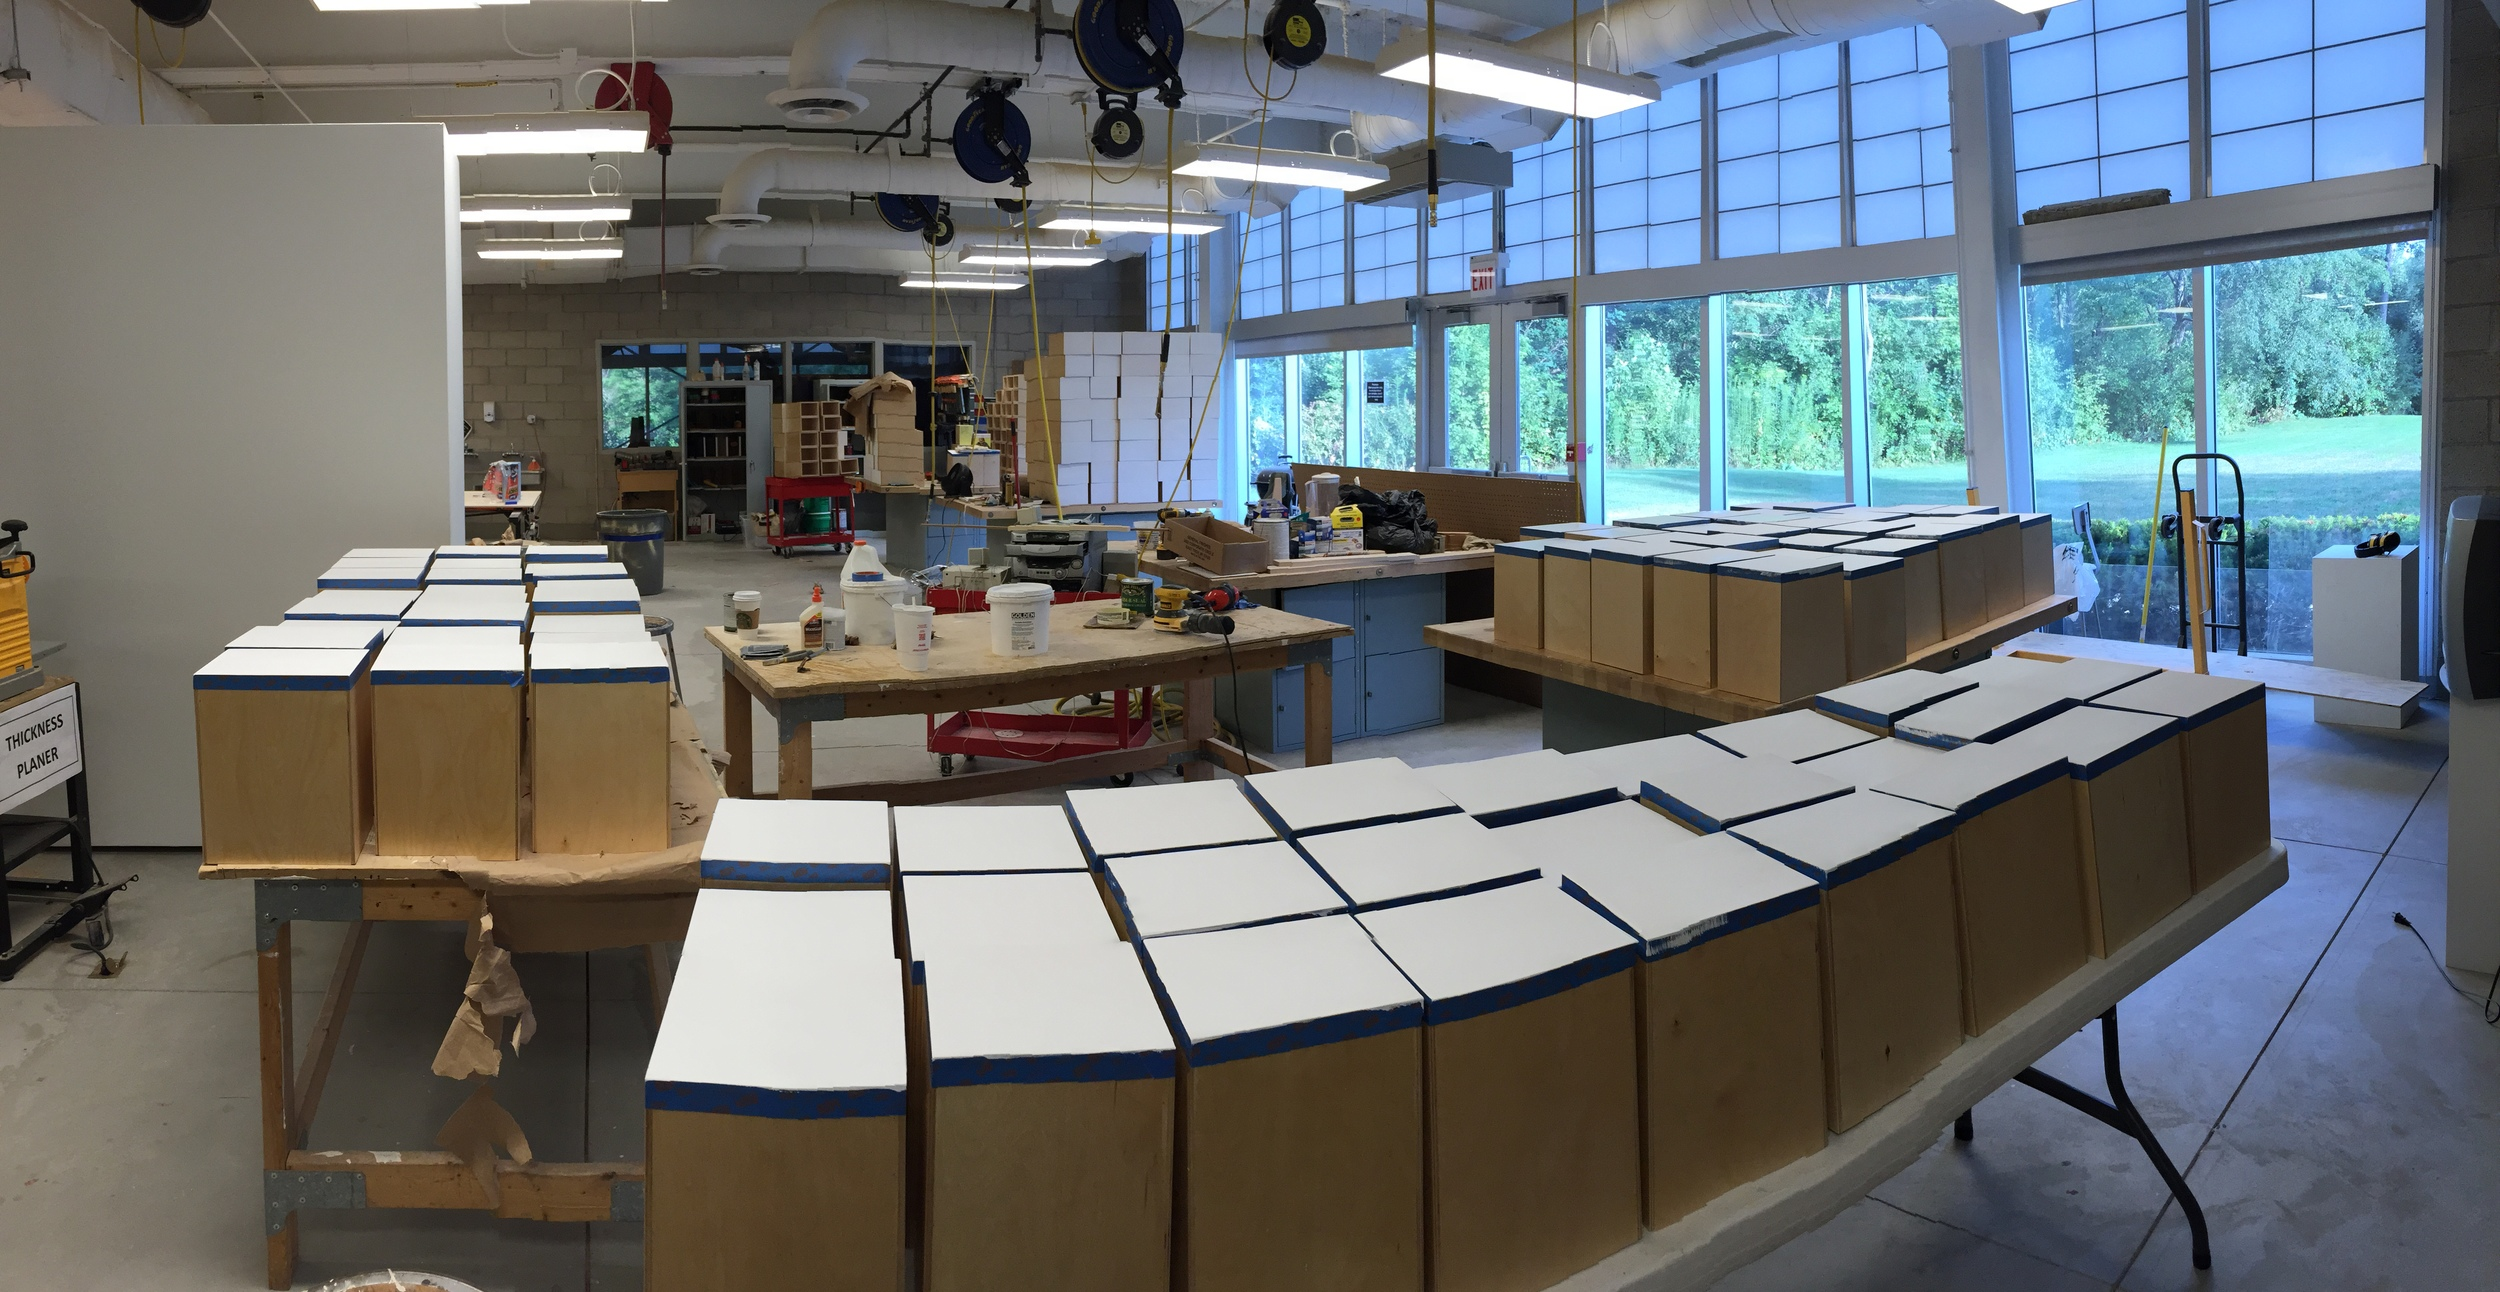 310 panels:One more coat of gesso and they are ready for Galesburg.